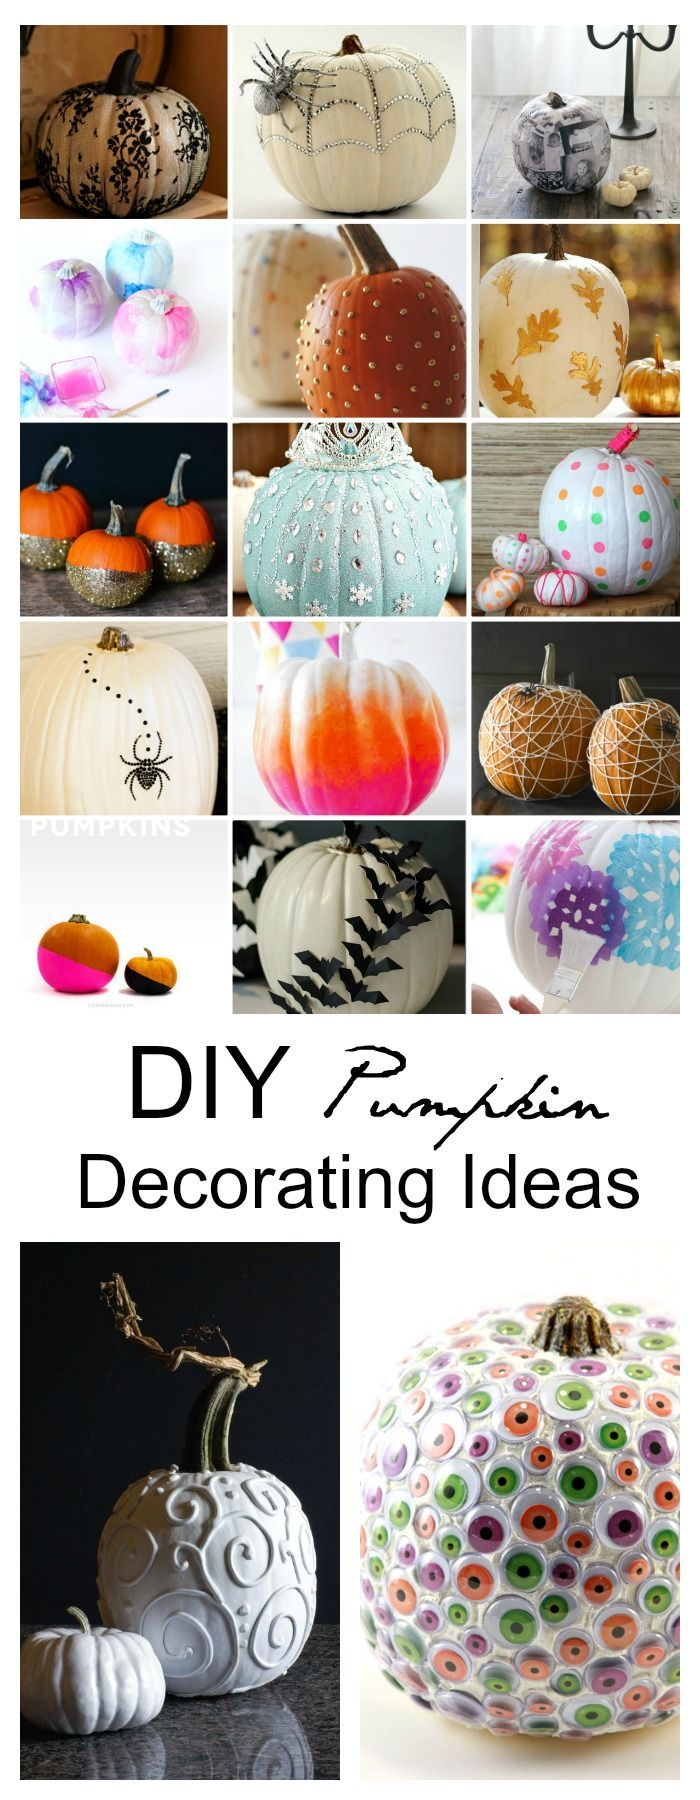 diy pumpkin decorating ideas - Ways To Decorate For Halloween